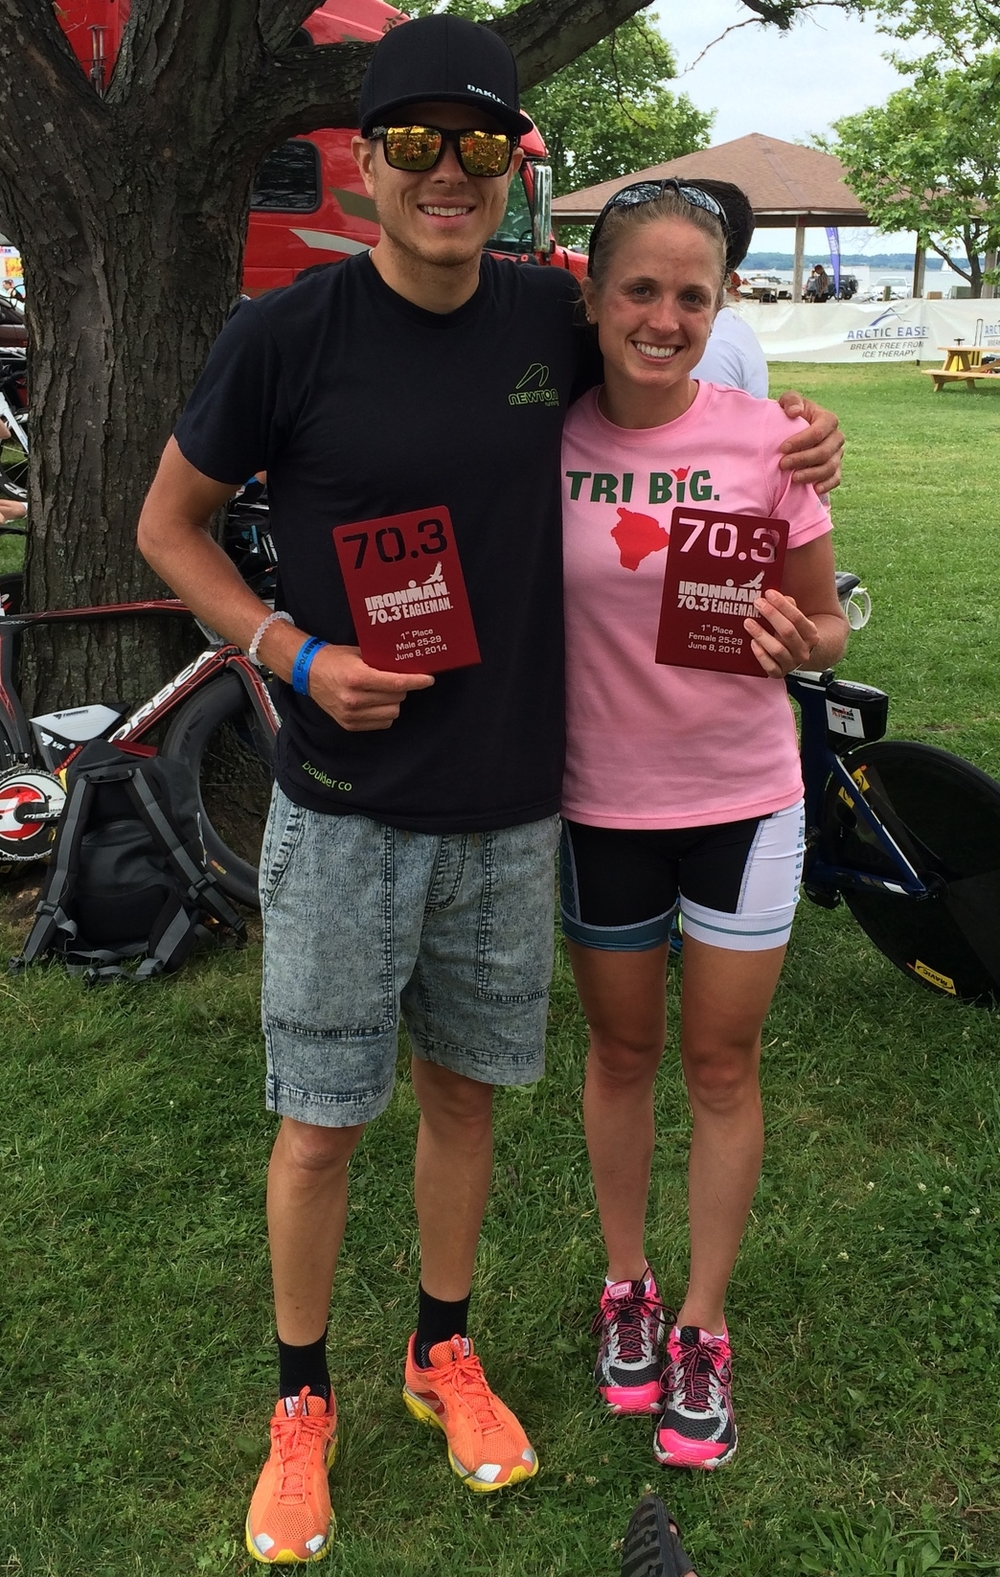 First in Age Group, Second Overall Amateurs, Breakaway Racing Teammates going to Kona!